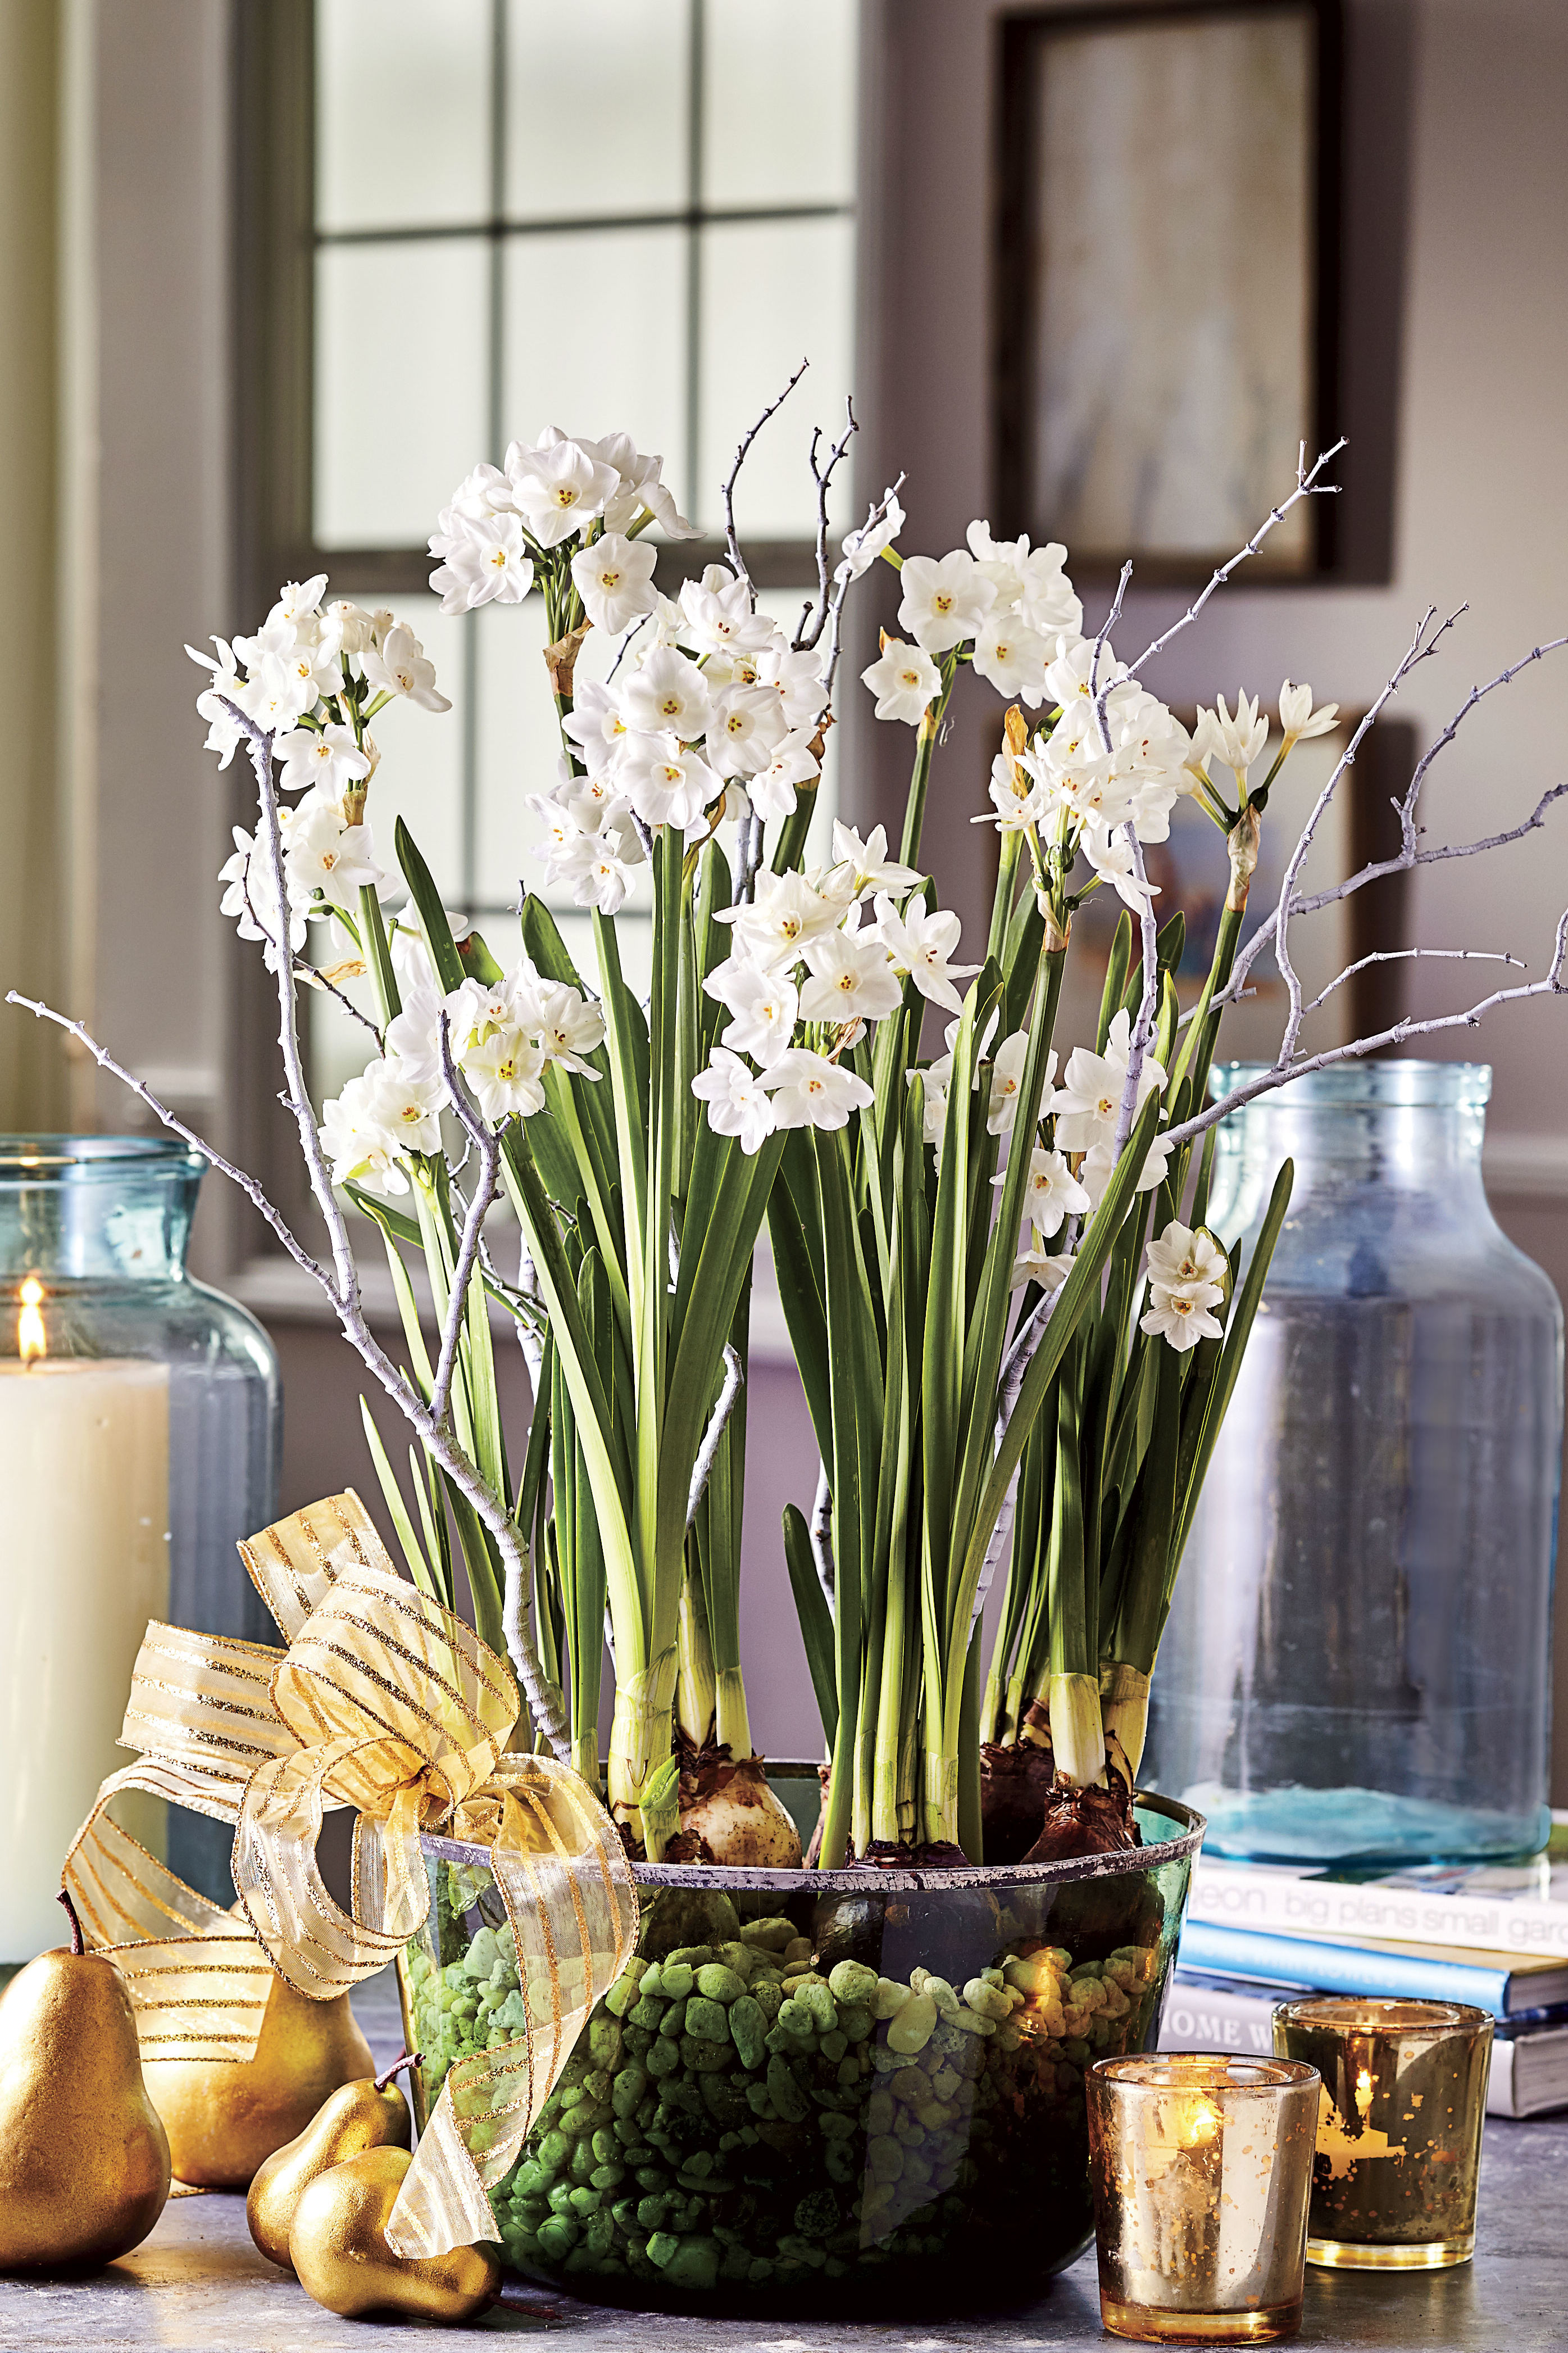 How to Grow Paperwhites